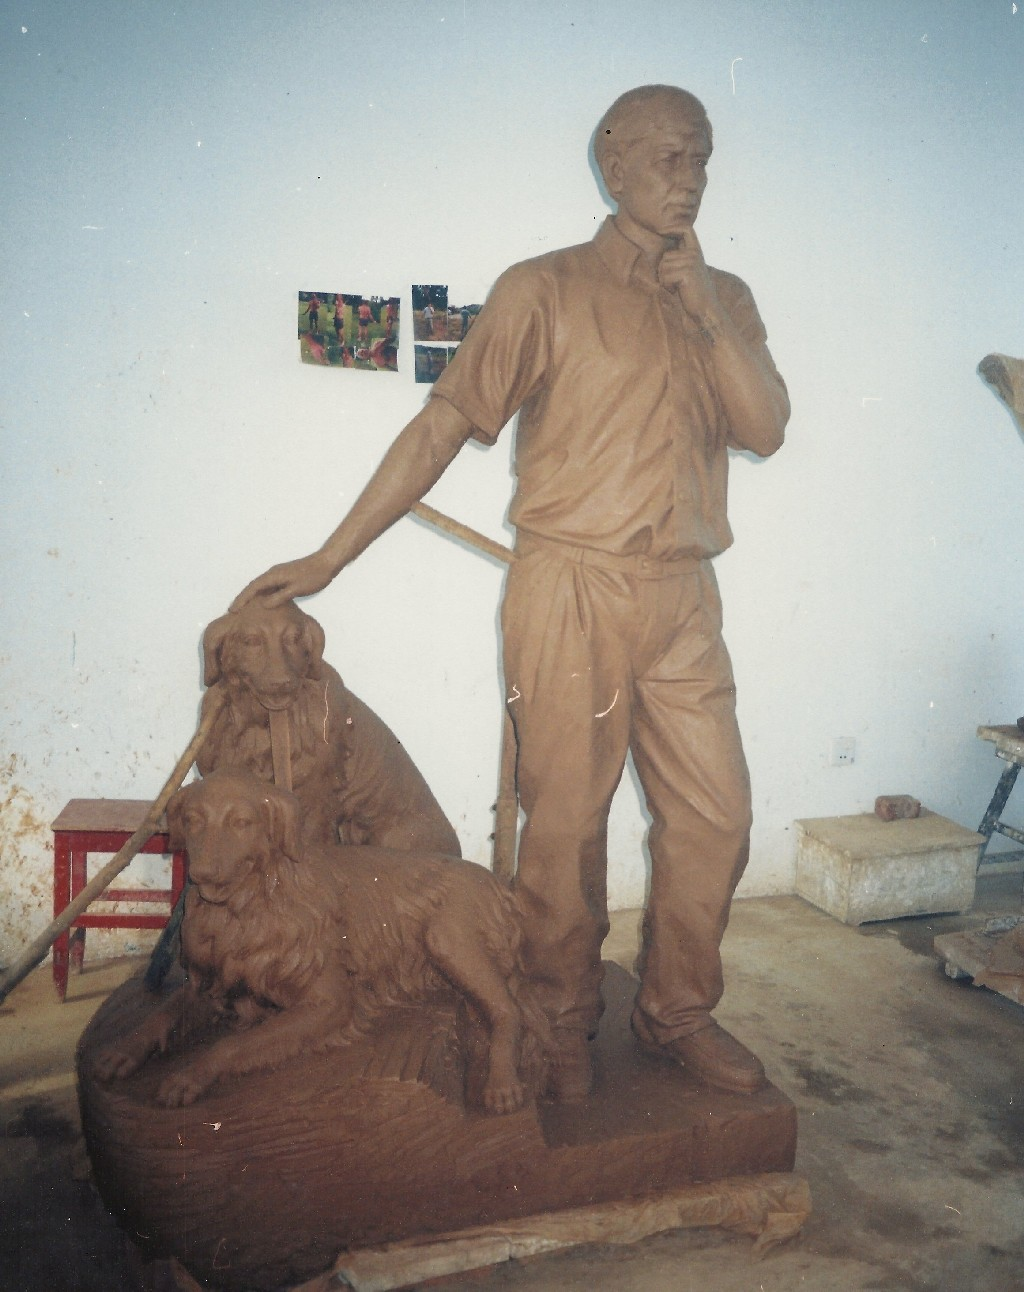 Man With Two Dogs - Lifesize